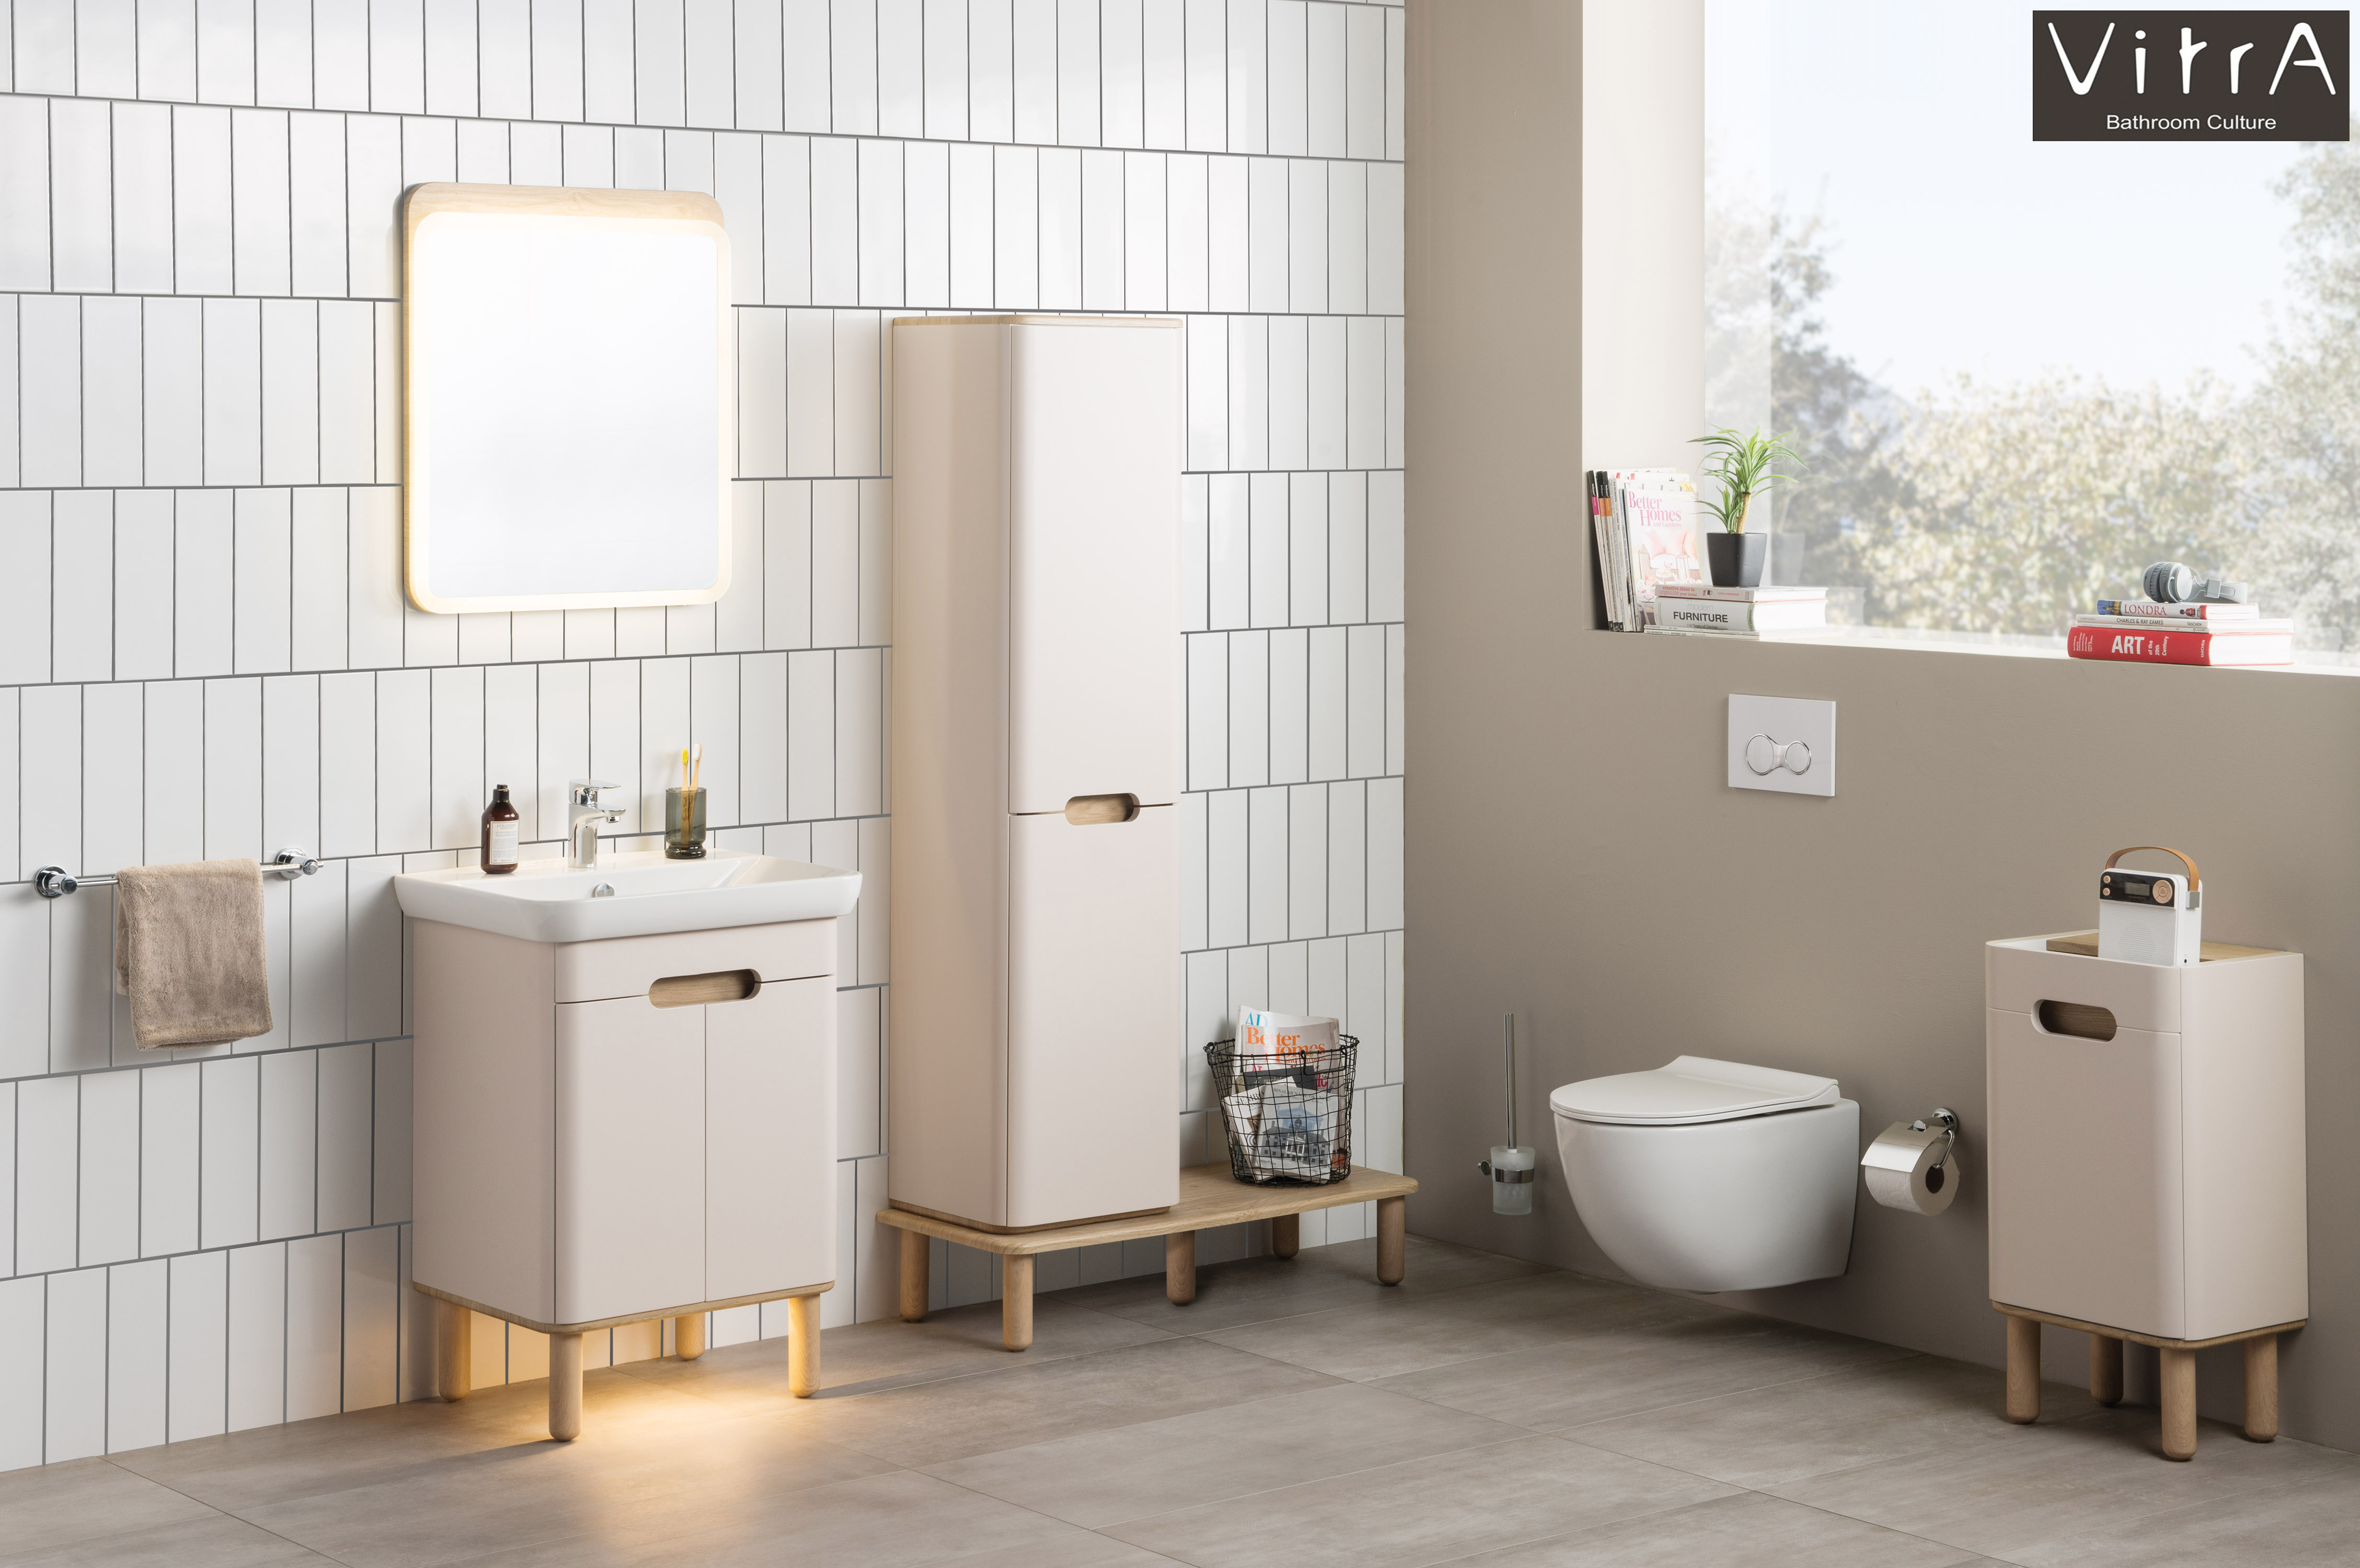 VitrA launches Sento WC with New Colour Options